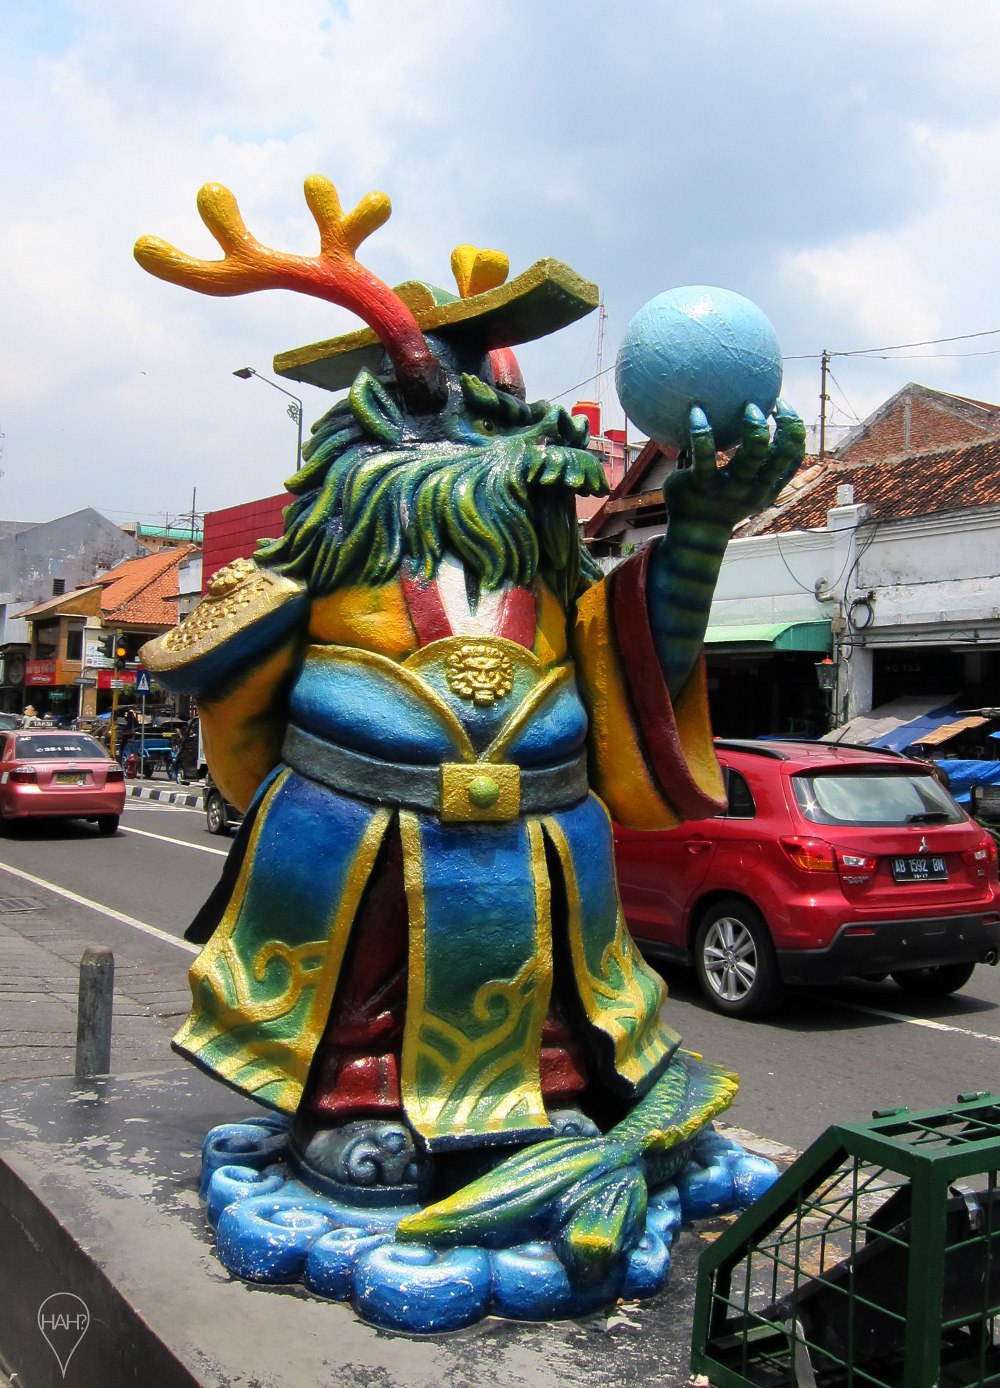 The streets of Jogja also have three-dimensional art.